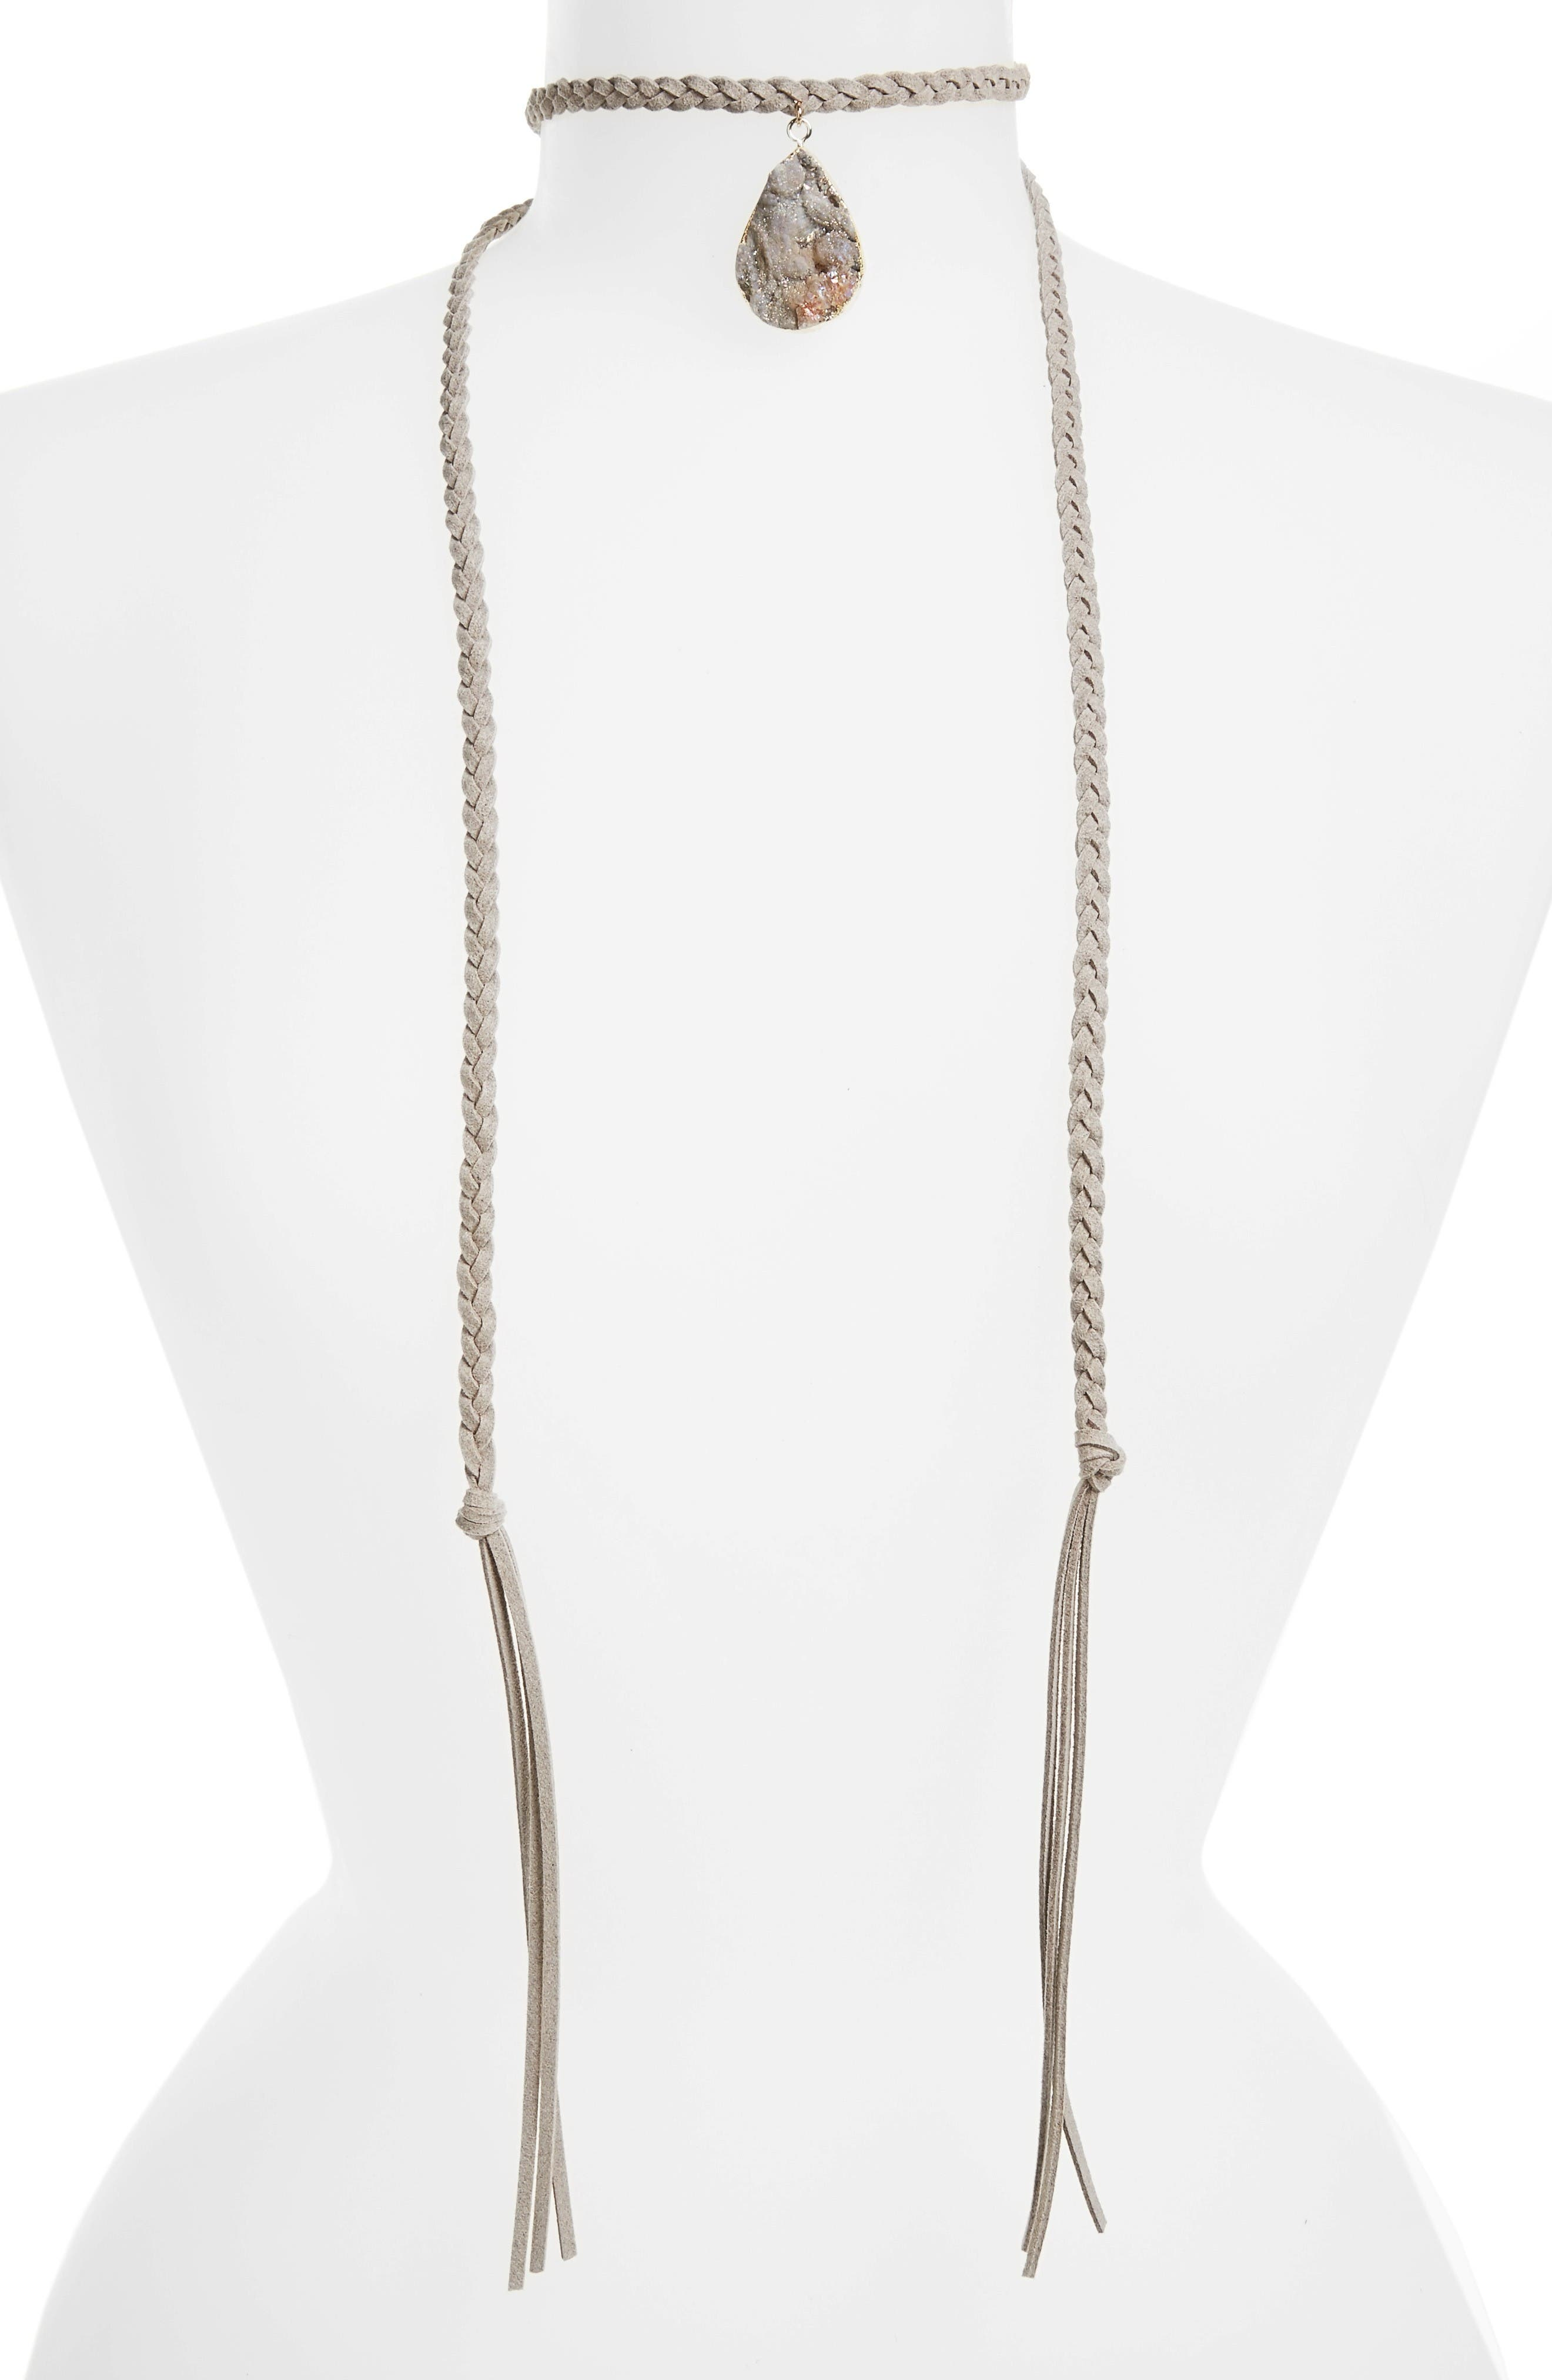 Alternate Image 1 Selected - Panacea Long Wrap Choker Necklace